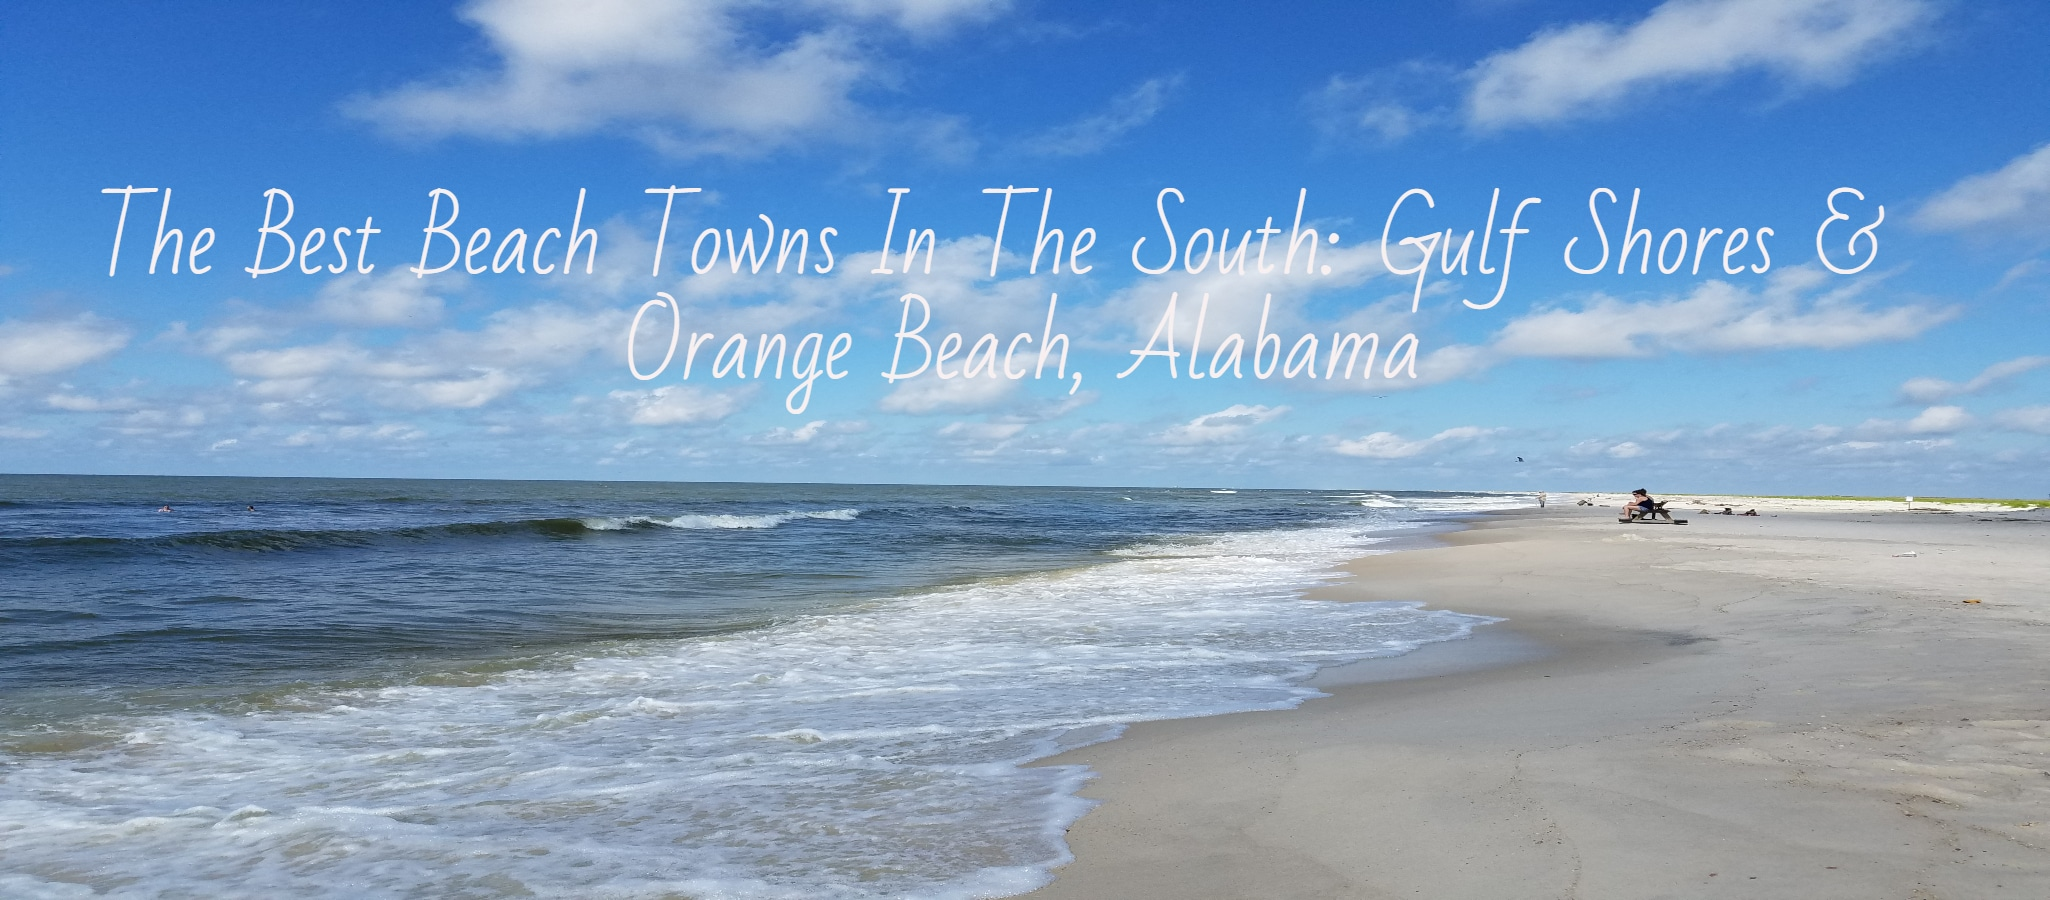 The Best Beach Towns In The South: Gulf Shores And Orange Beach, Alabama